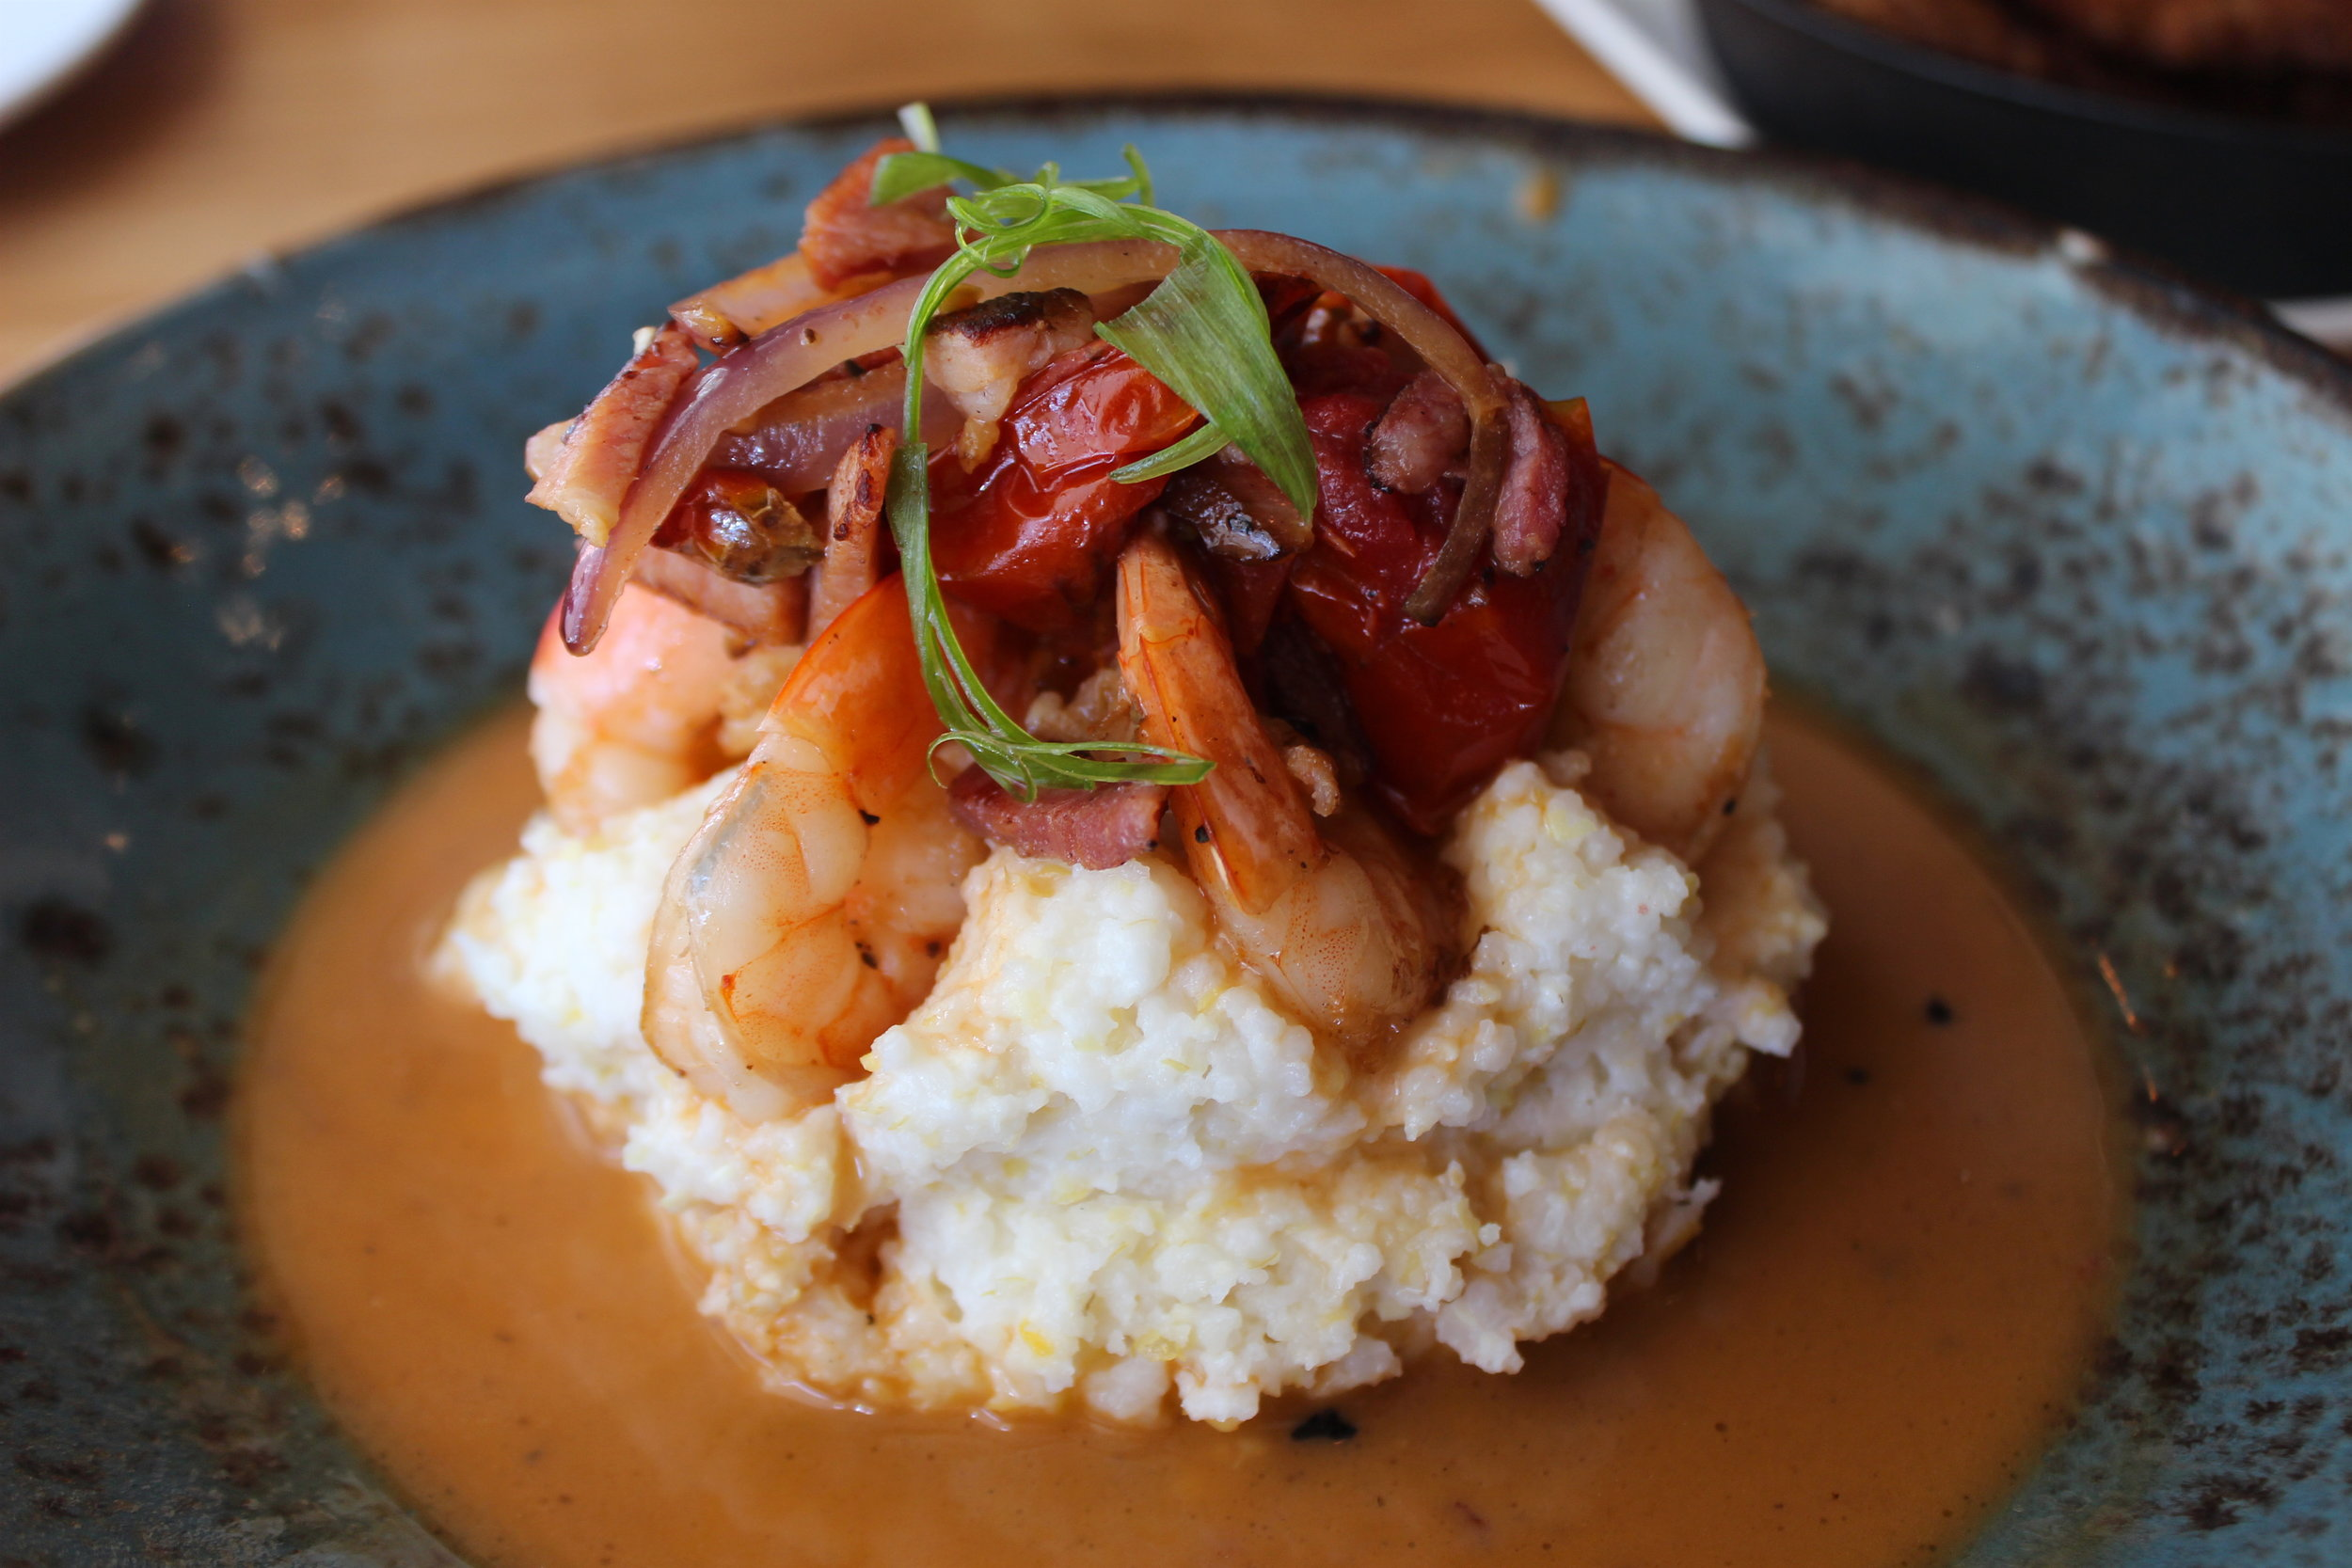 Shrimp n' Grits: Seared Shrimp, Roasted Tomatoes, Virginia Ham, Nora Mill Grits, PBR Chicken Jus